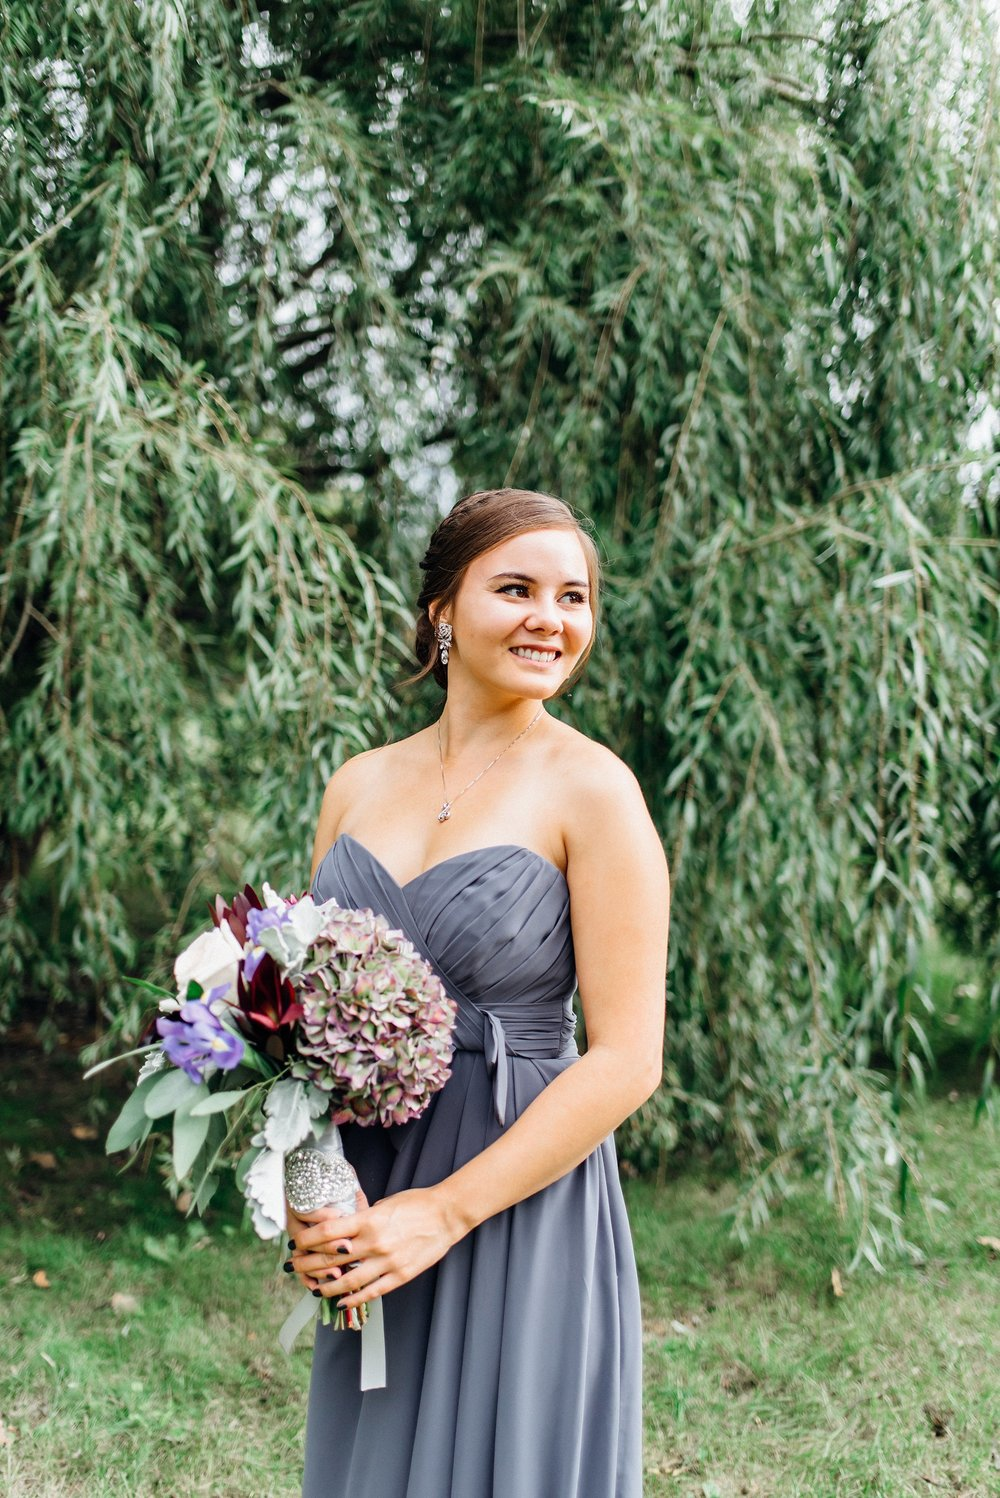 Ali and Batoul Photography - light, airy, indie documentary Ottawa wedding photographer_0191.jpg